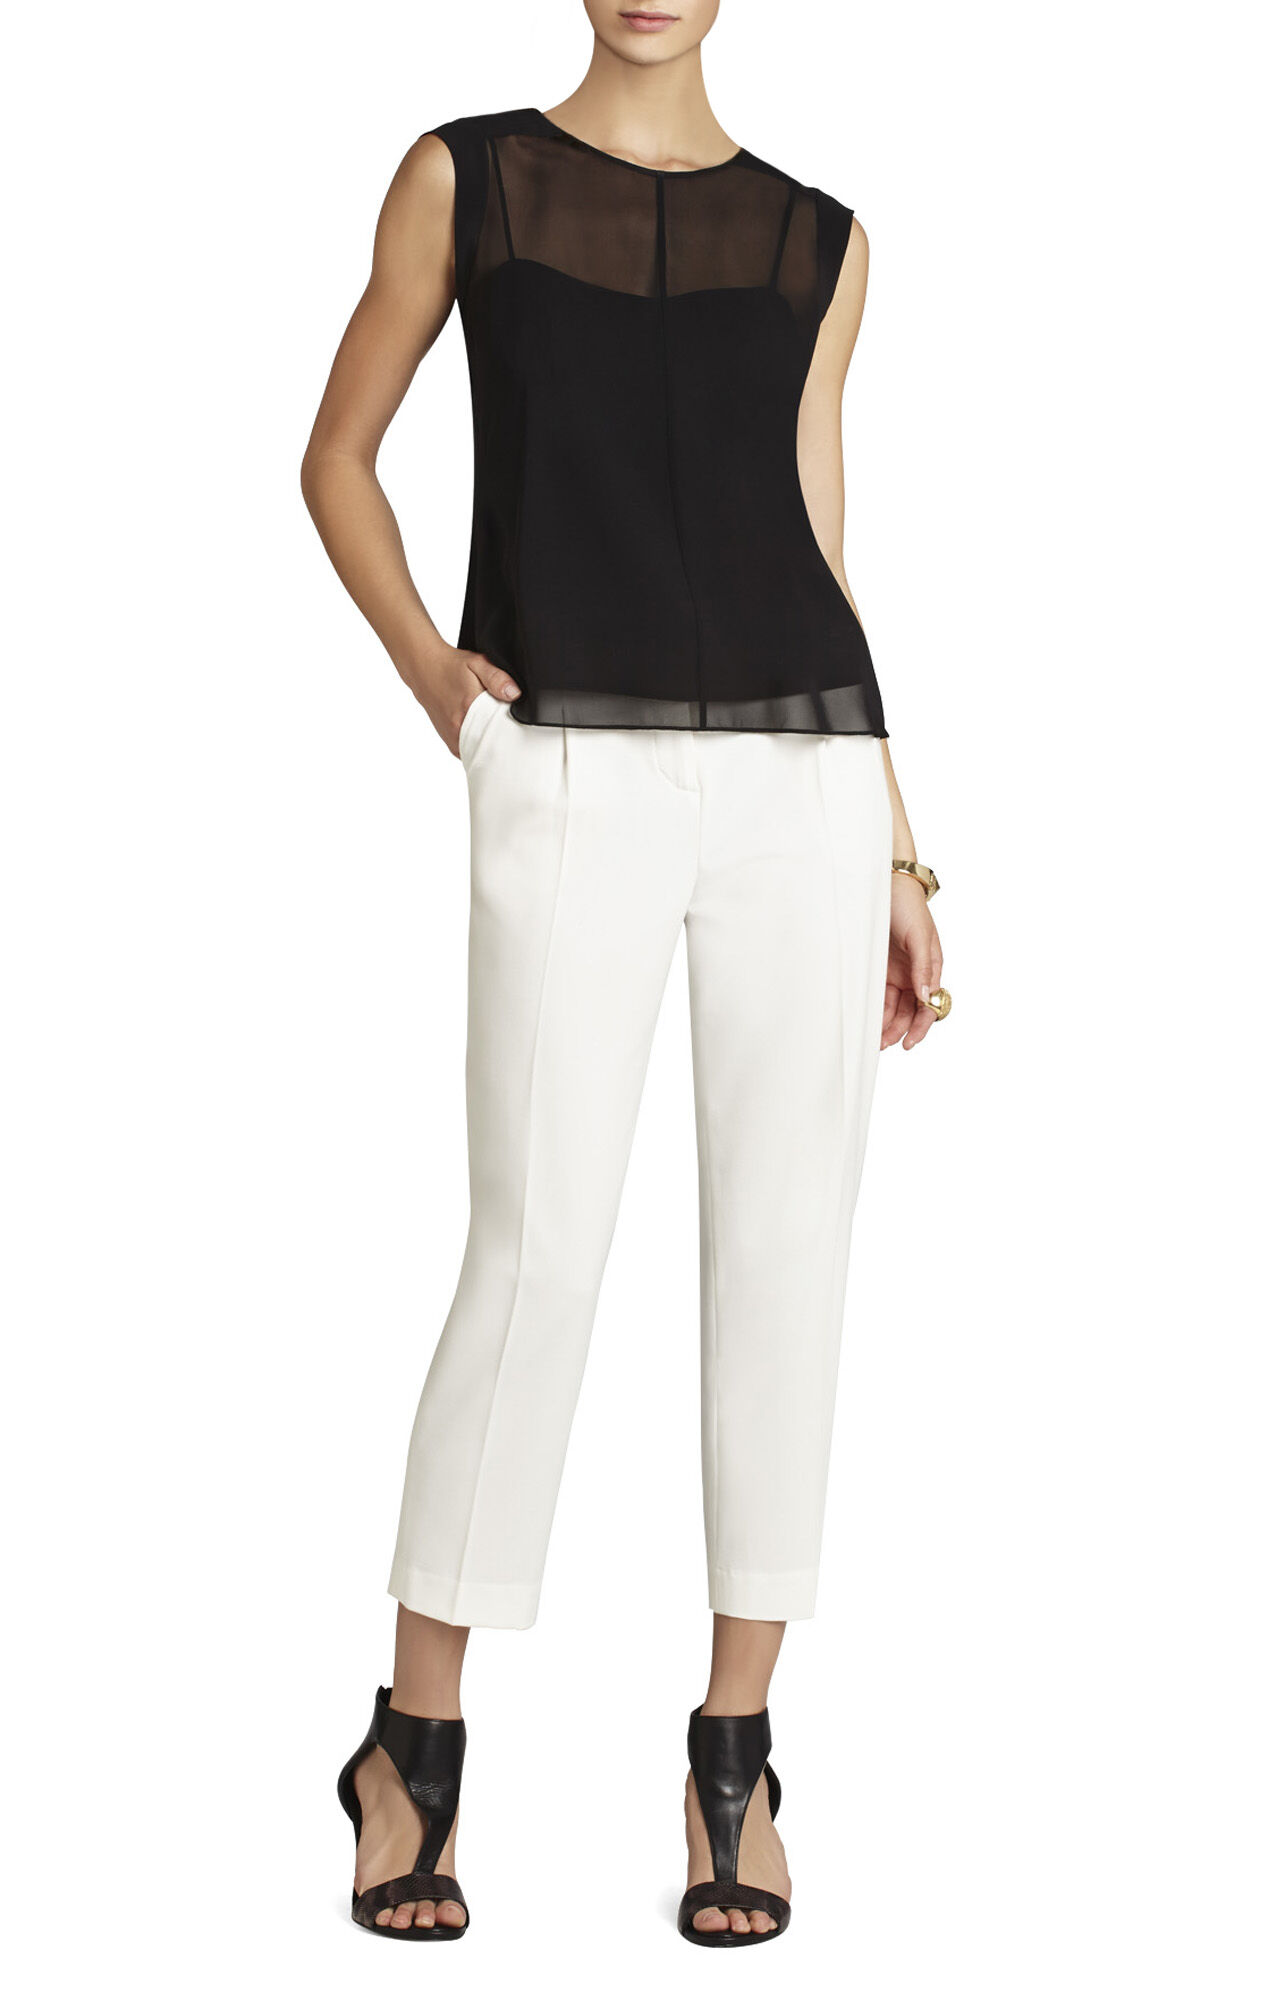 Seline Sleeveless Top With Cami